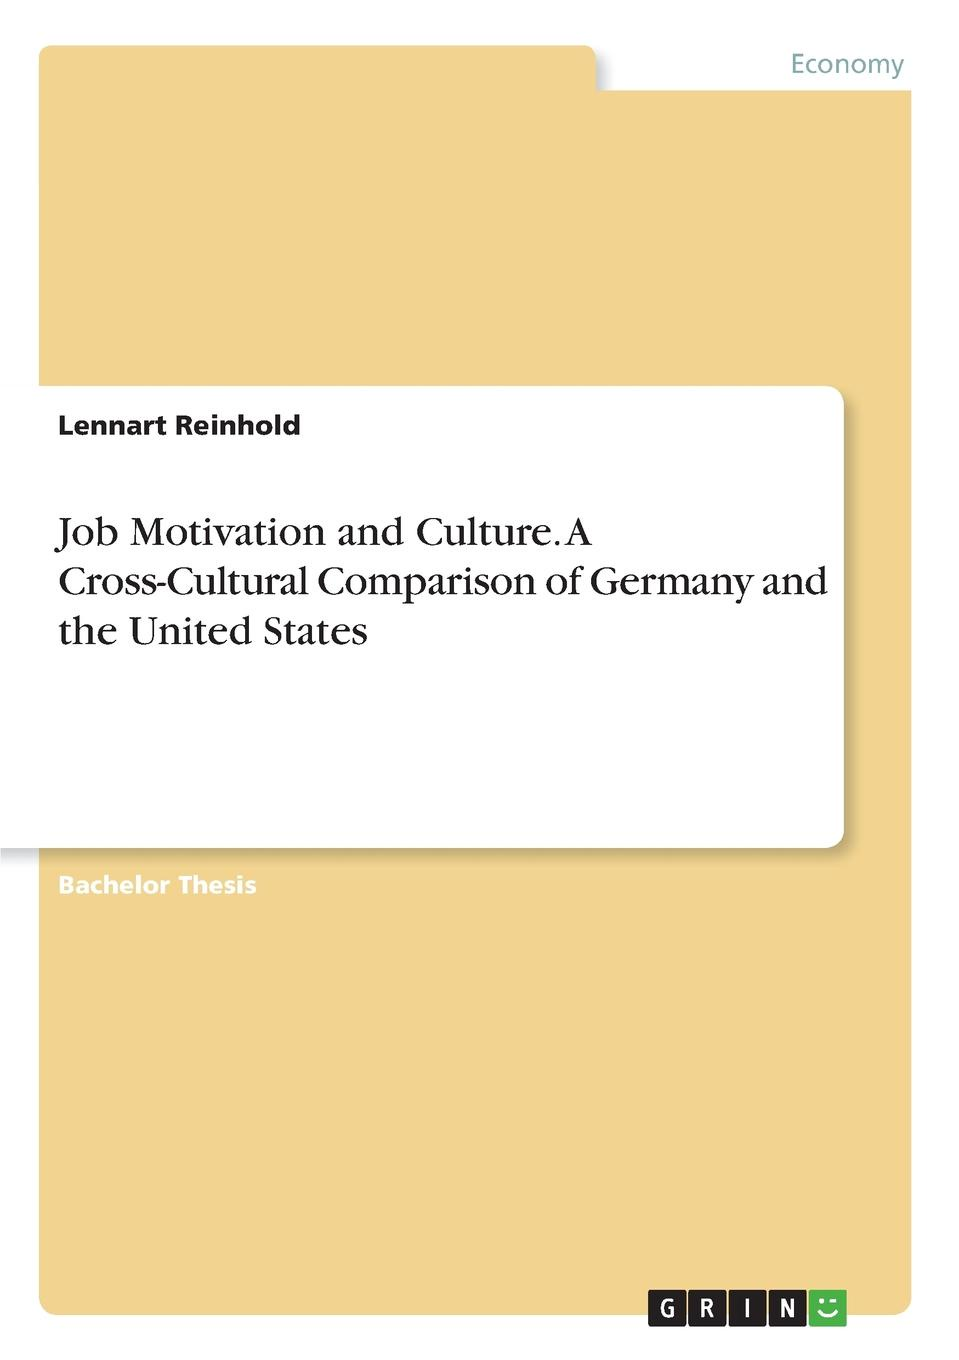 Lennart Reinhold Job Motivation and Culture. A Cross-Cultural Comparison of Germany and the United States tak ming yu differences in attitudes between younger and older people toward old age implications for counselling